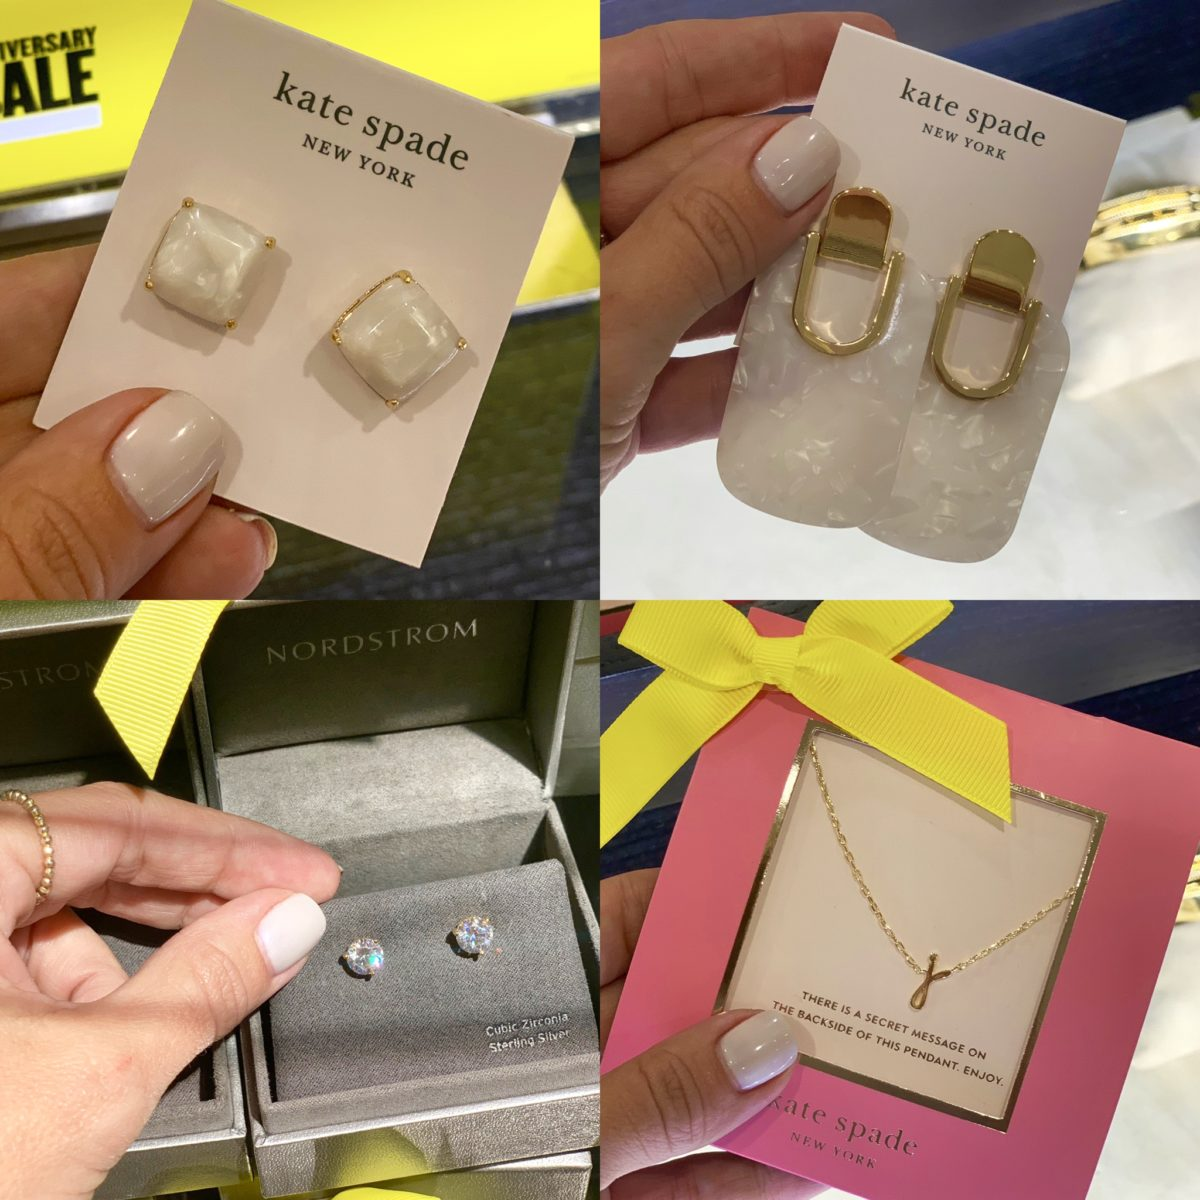 Nordstrom Anniversary Sale - Kate spade earrings and necklace with nordstrom earrings